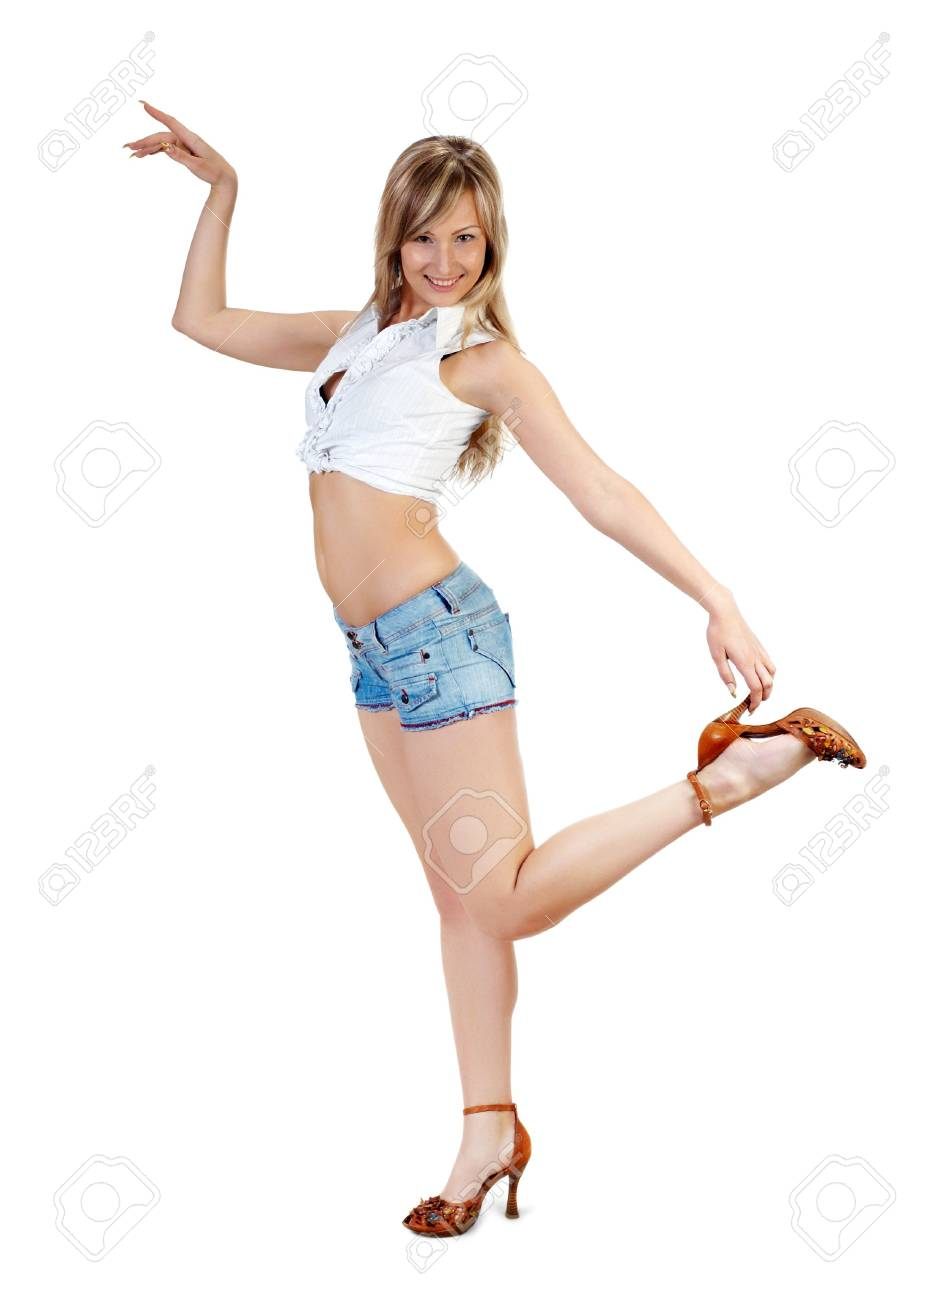 long legged cute blond girl in blue jeans shorts on white Stock Photo - 3001573